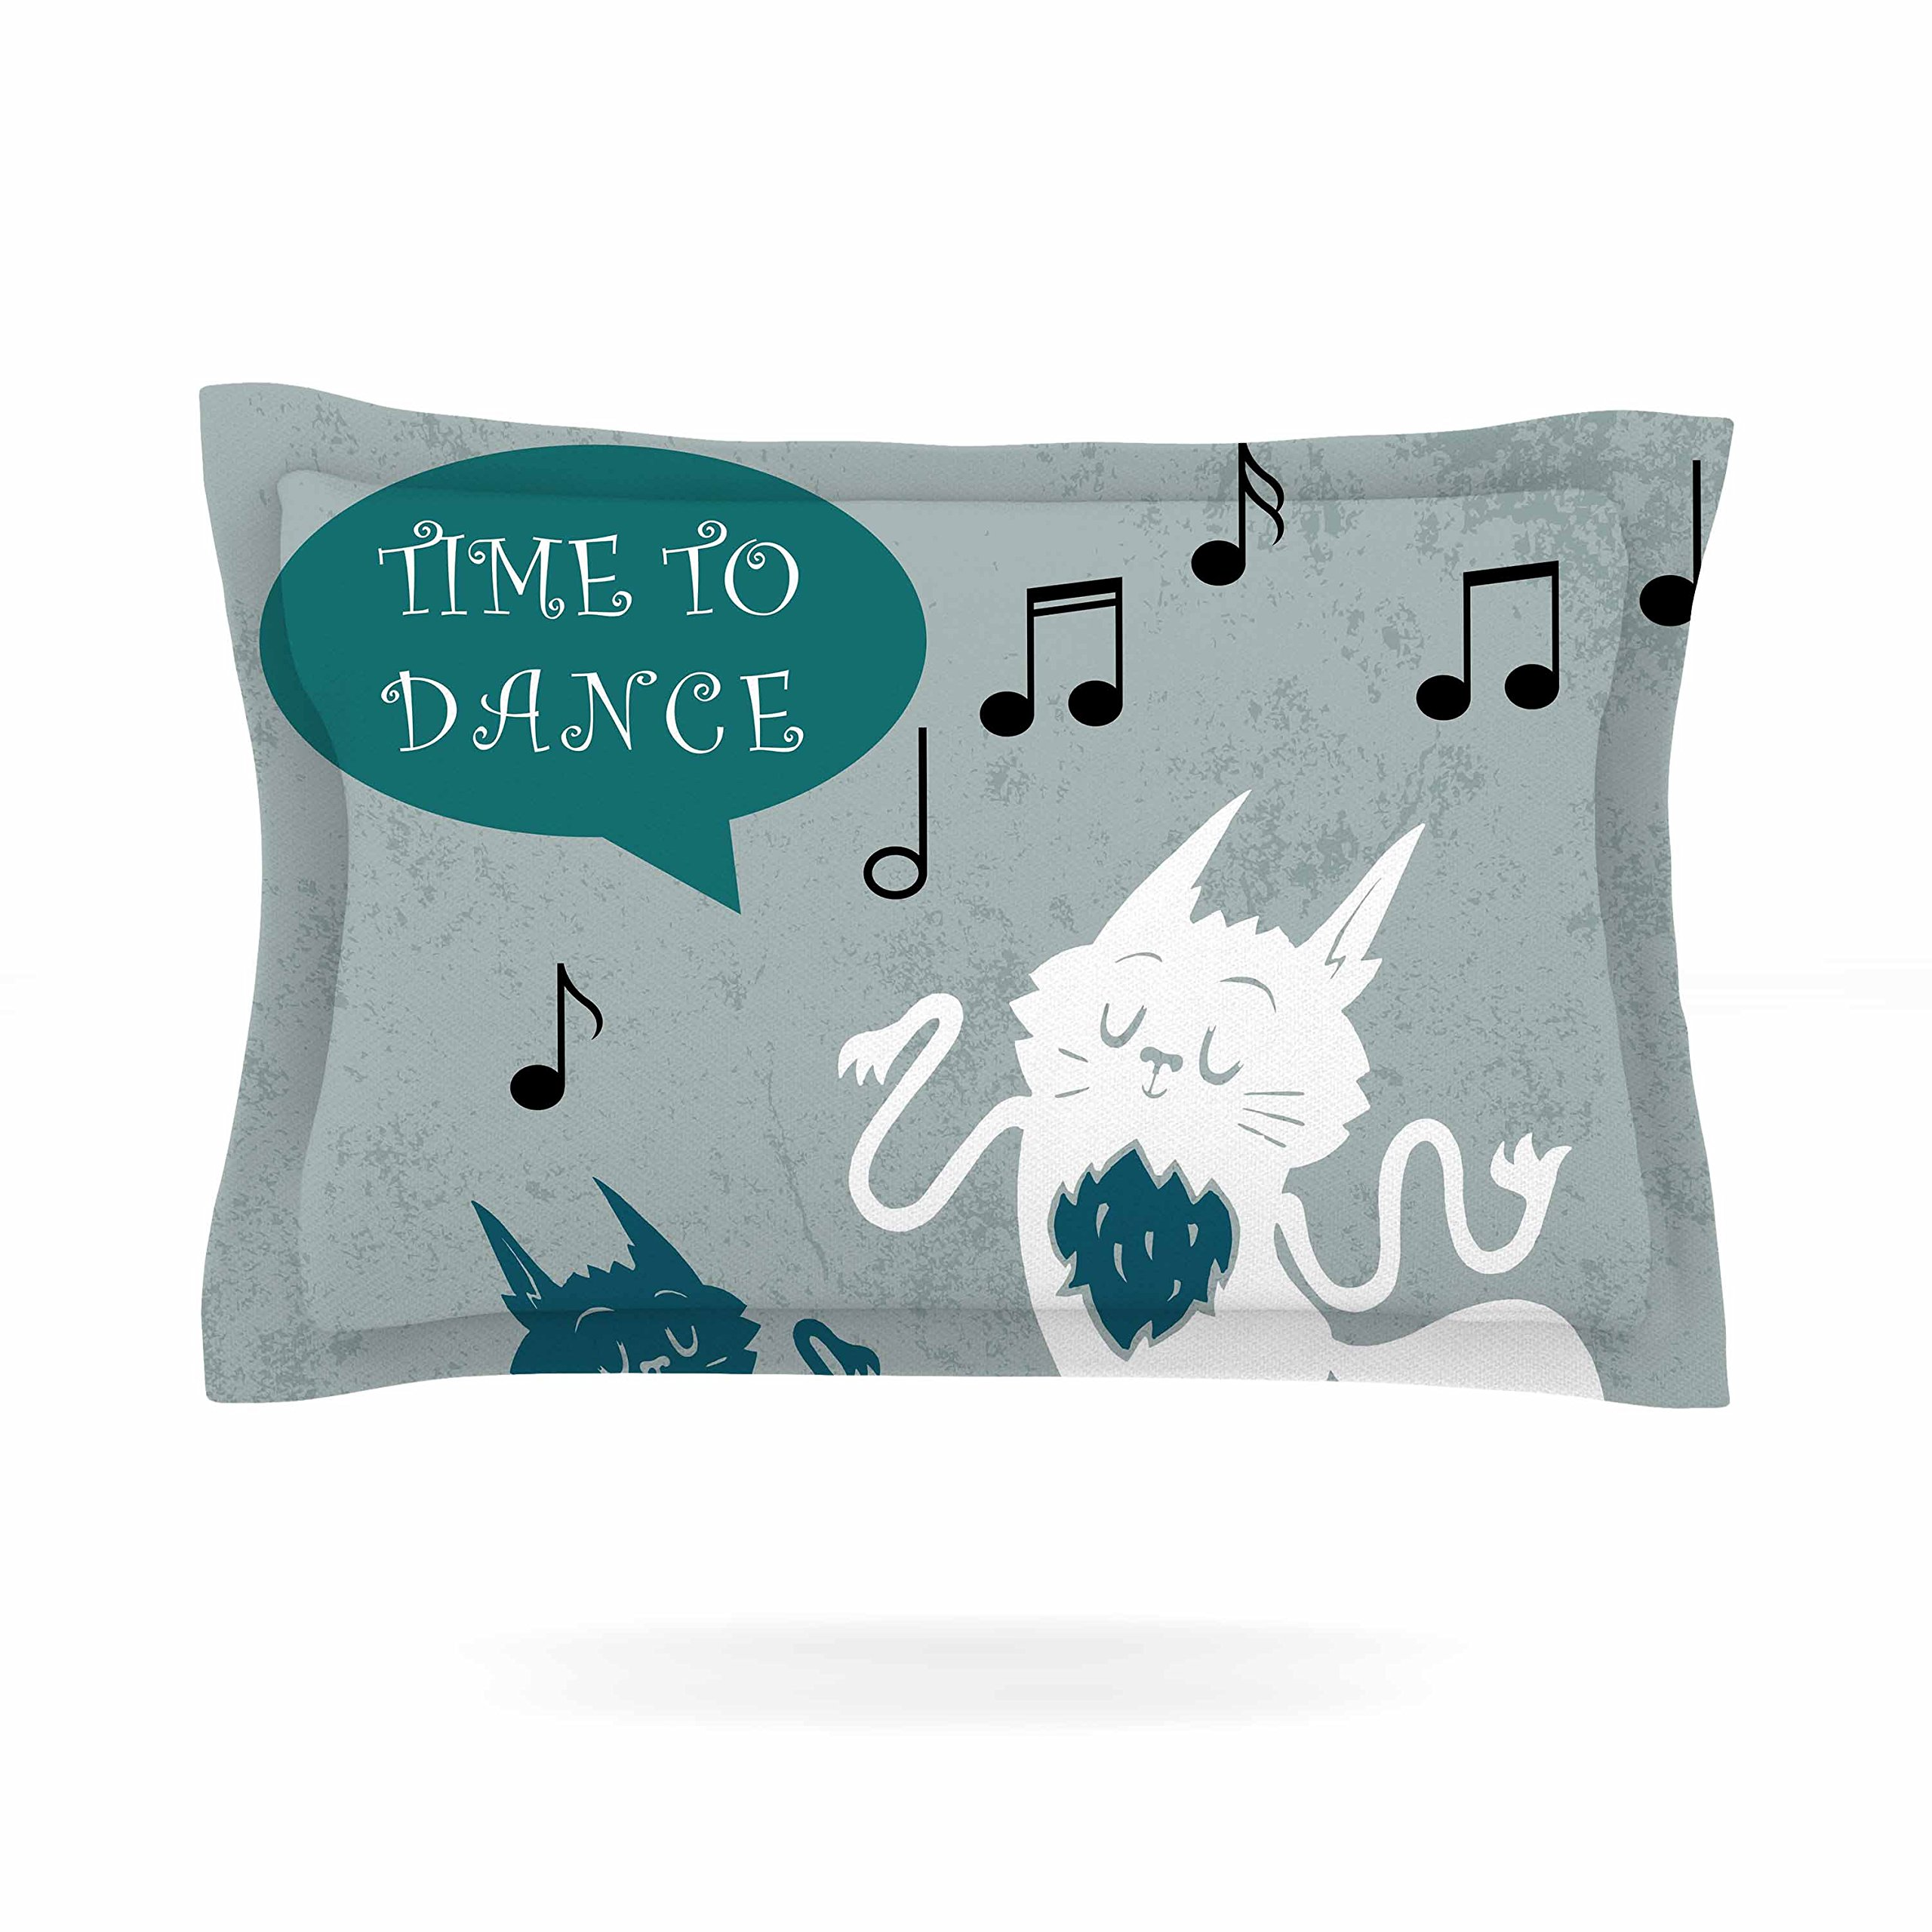 KESS InHouse Anya Volk ''Time To Dance'' Green White Pillow Sham, 40'' x 20''